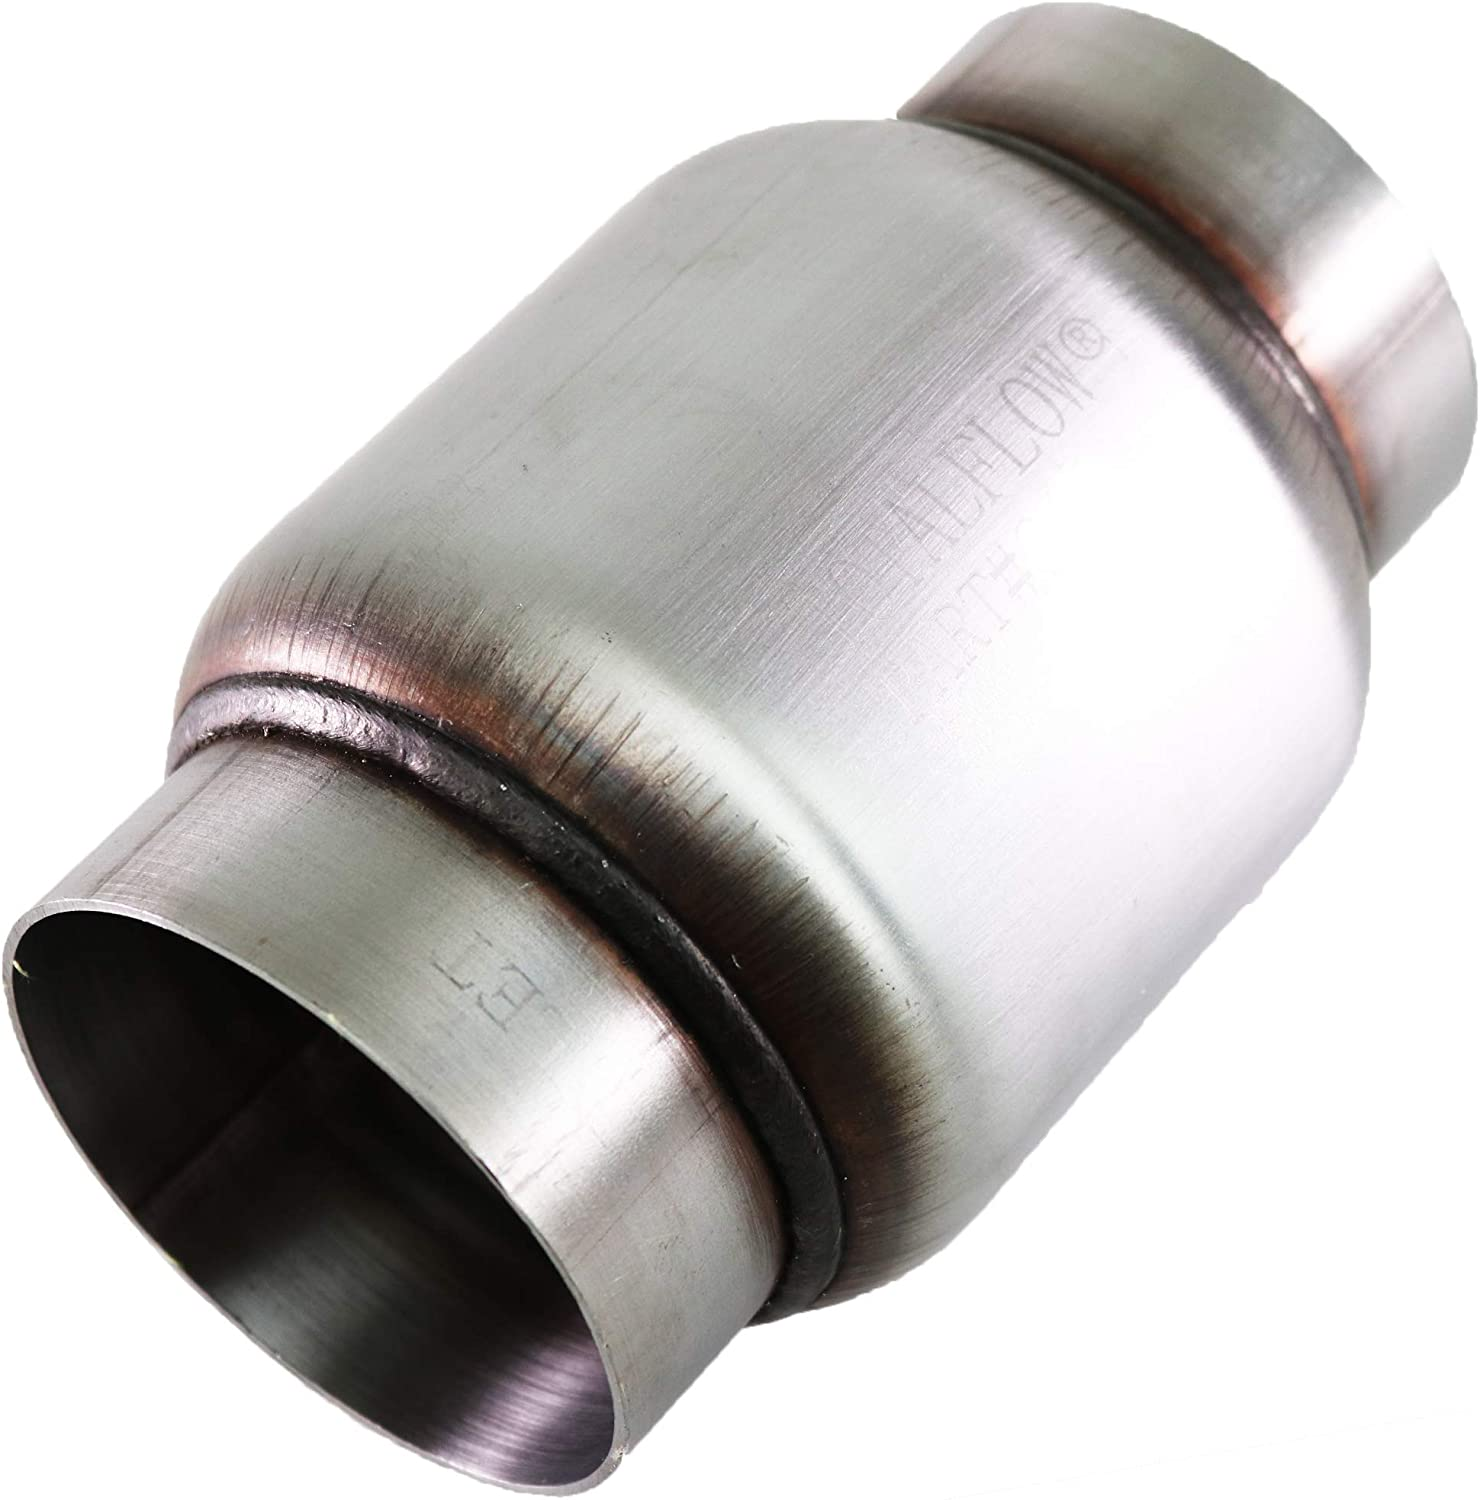 "TOTALFLOW 644 Mini Muffler 409SS | 3.5"" Round Width 